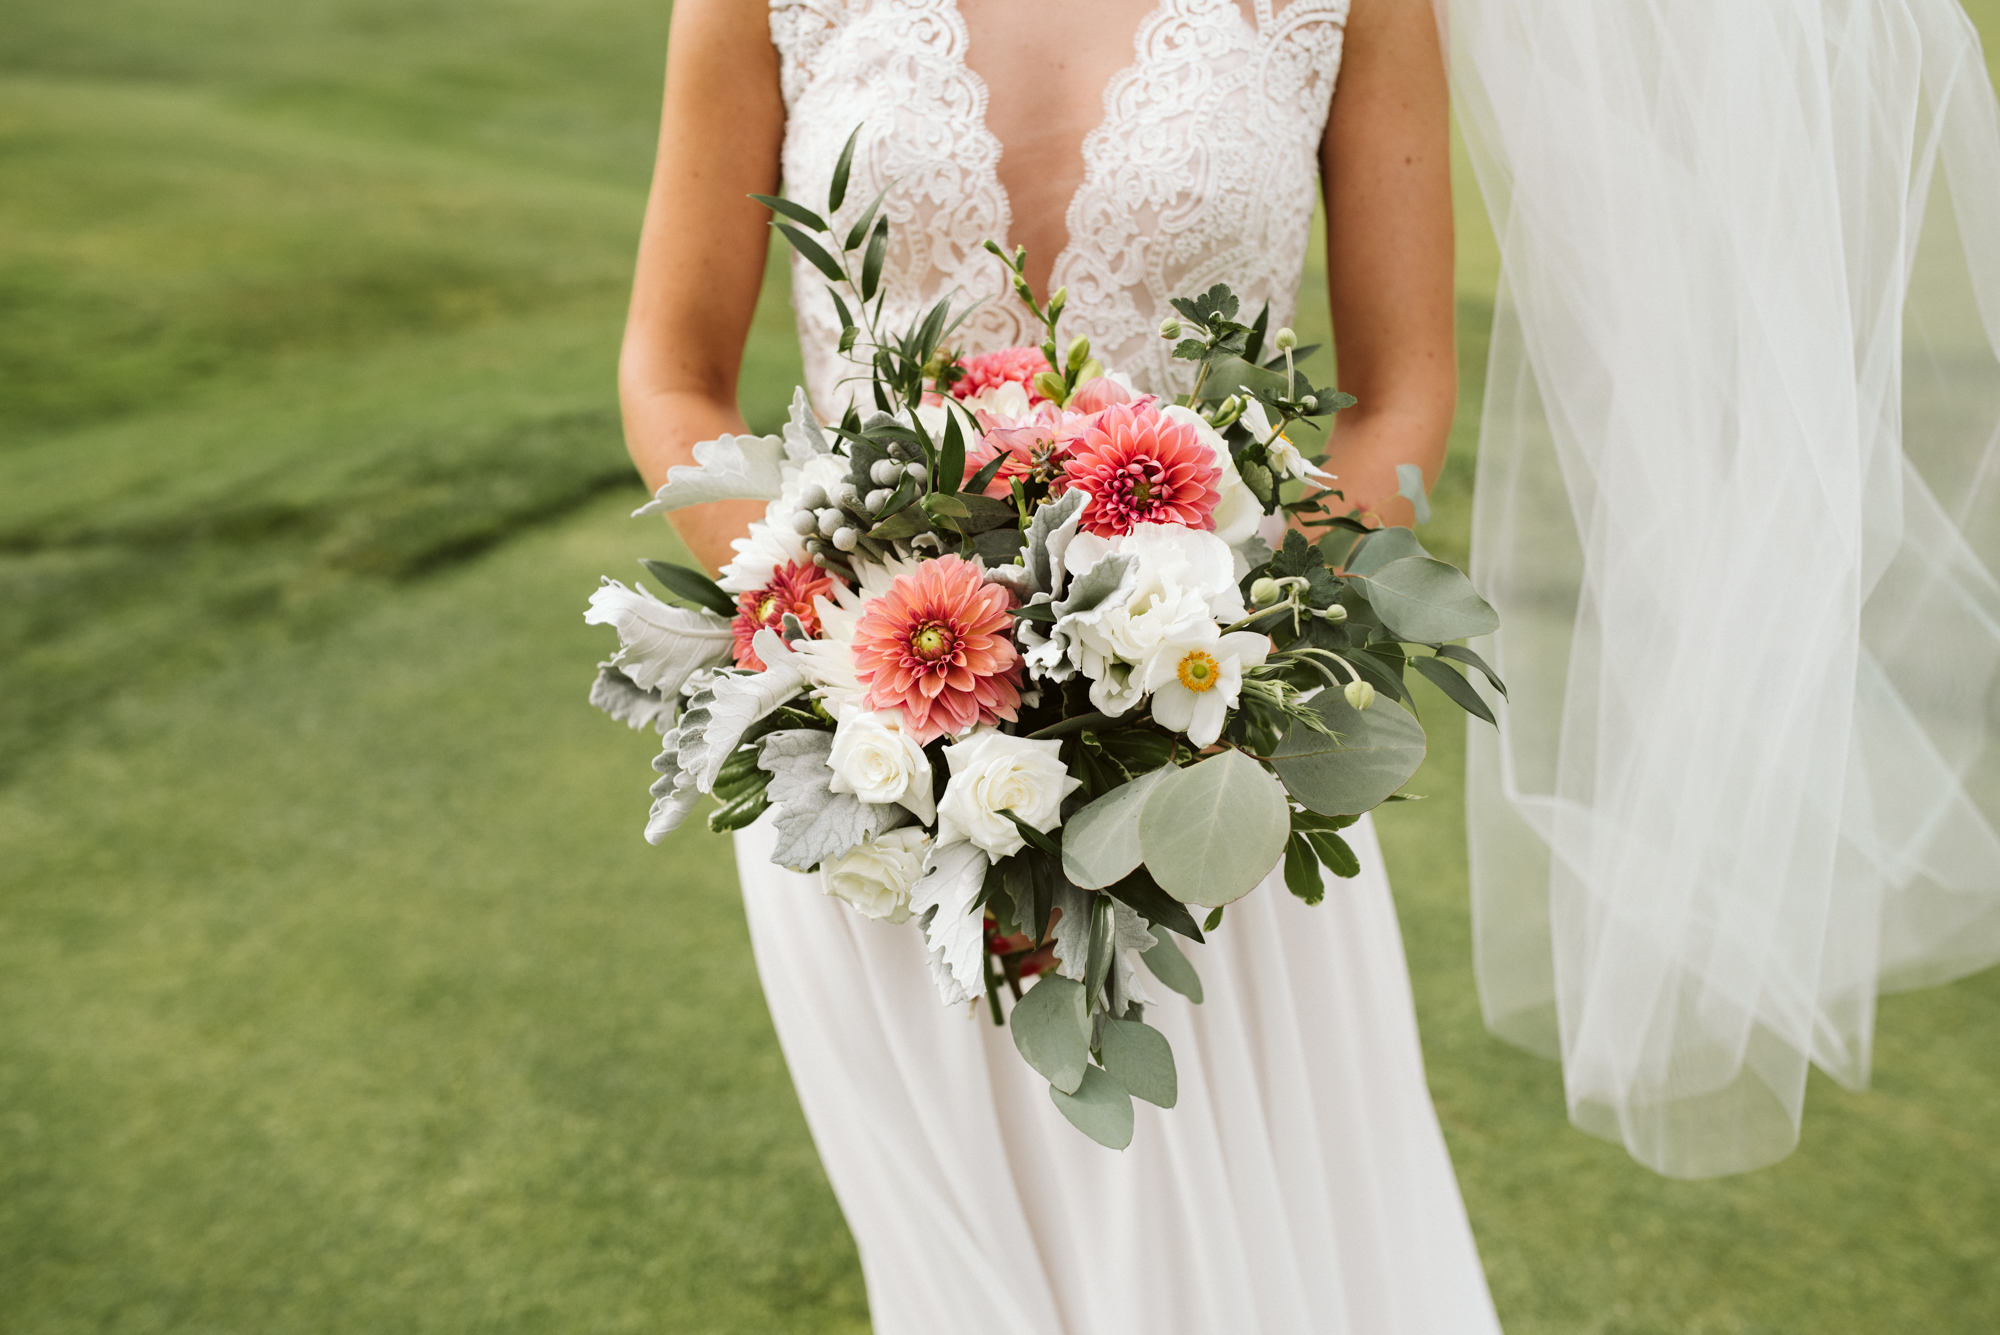 Elegant, Columbia Country Club, Chevy Chase Maryland, Baltimore Wedding Photographer, Classic, Traditional, Jewish Wedding, BHDLN Wedding Dress, Mint and Coral Flowers, Meg Owen Floral Designs